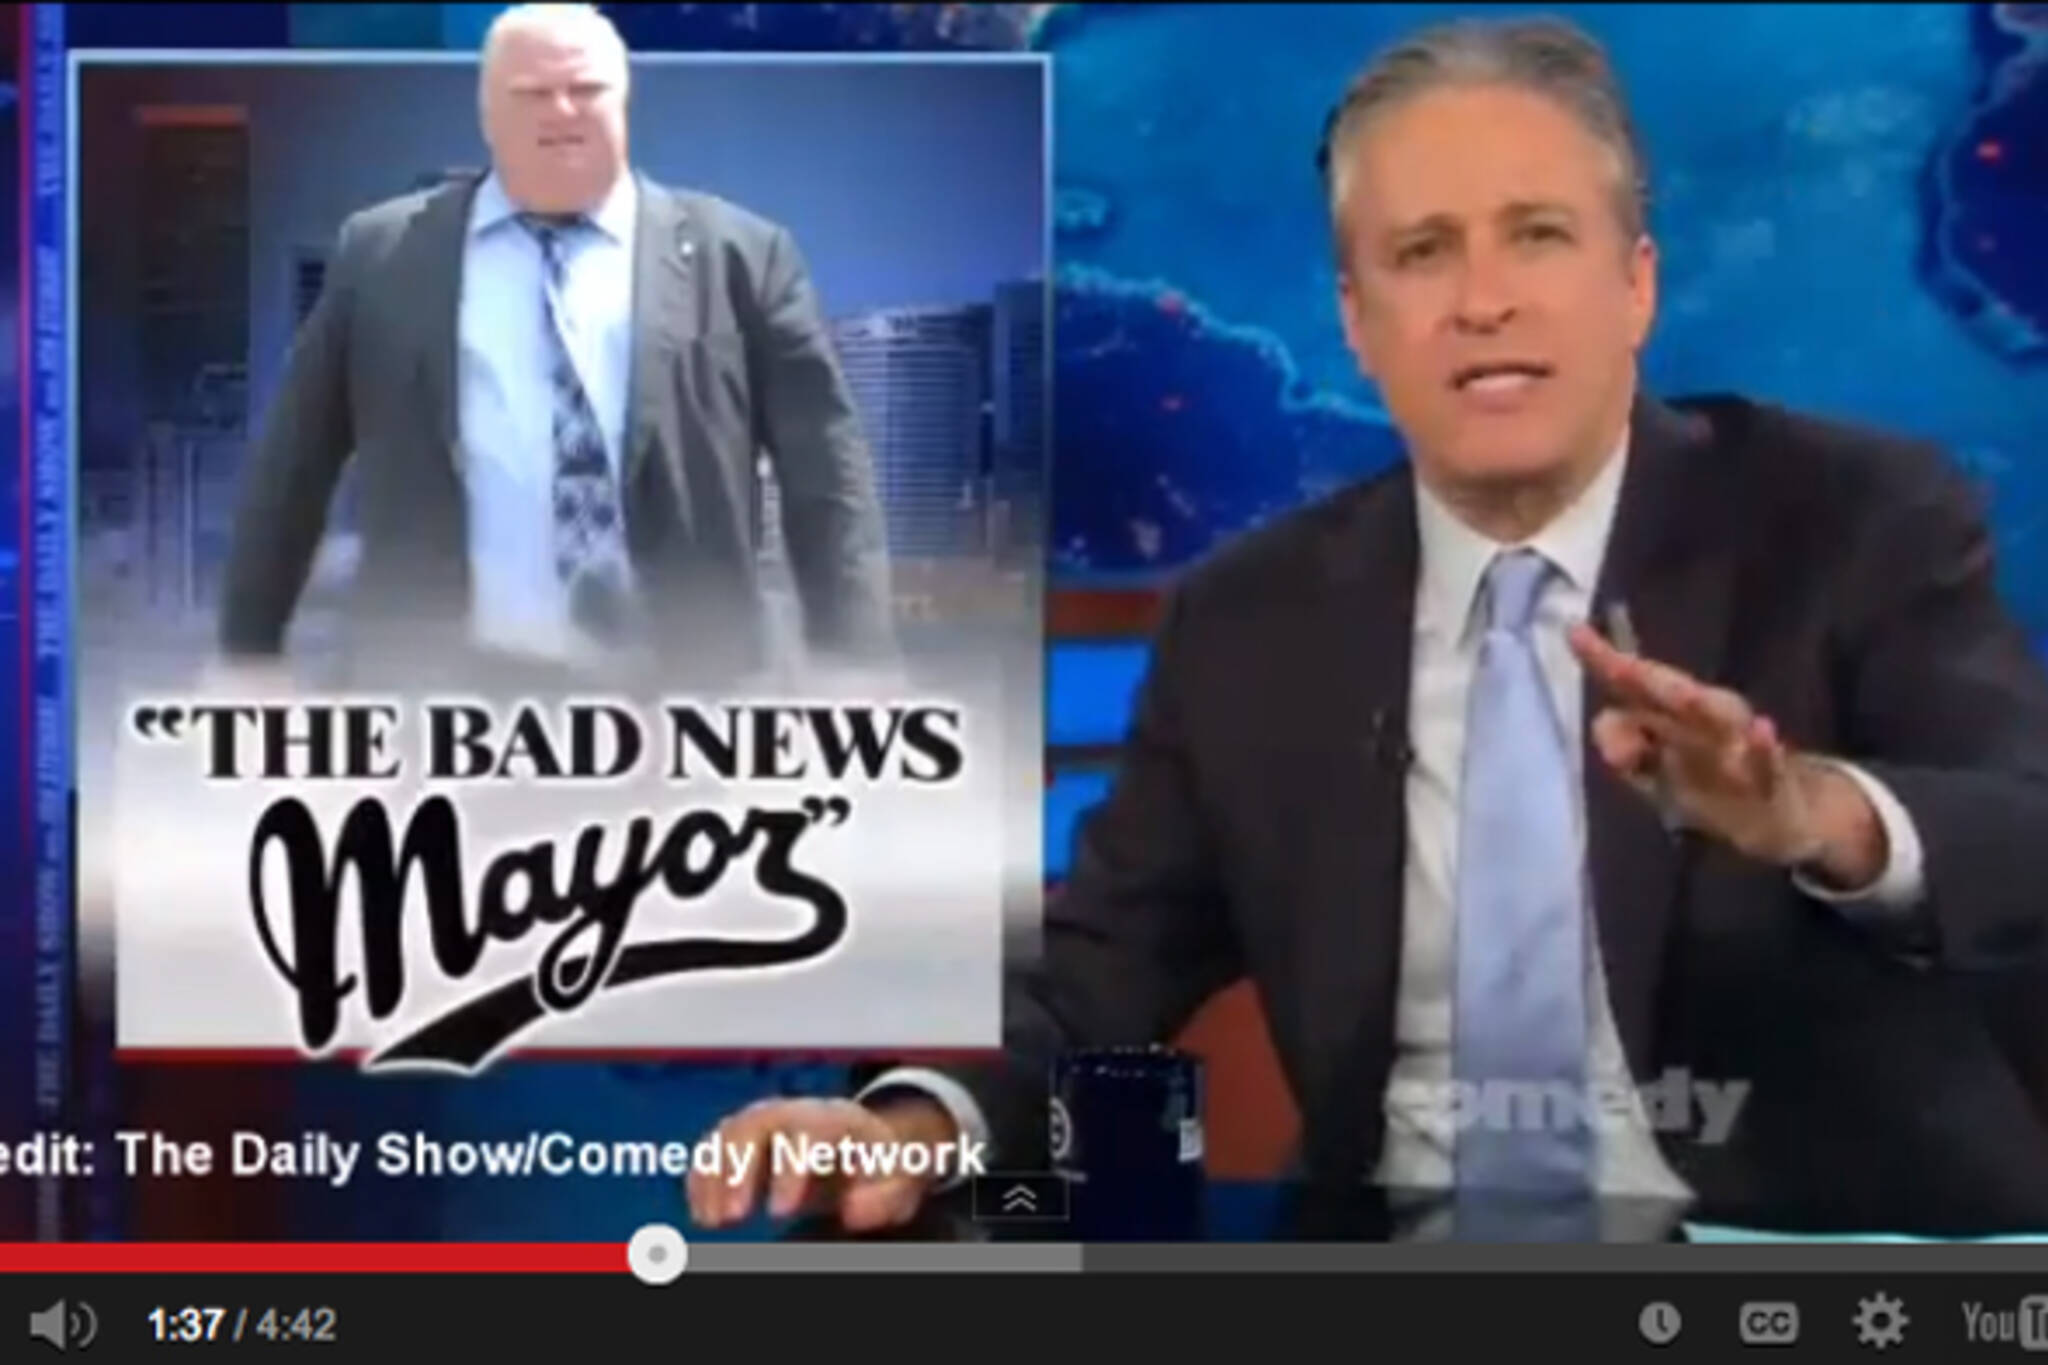 Rob Ford rehab late night TV